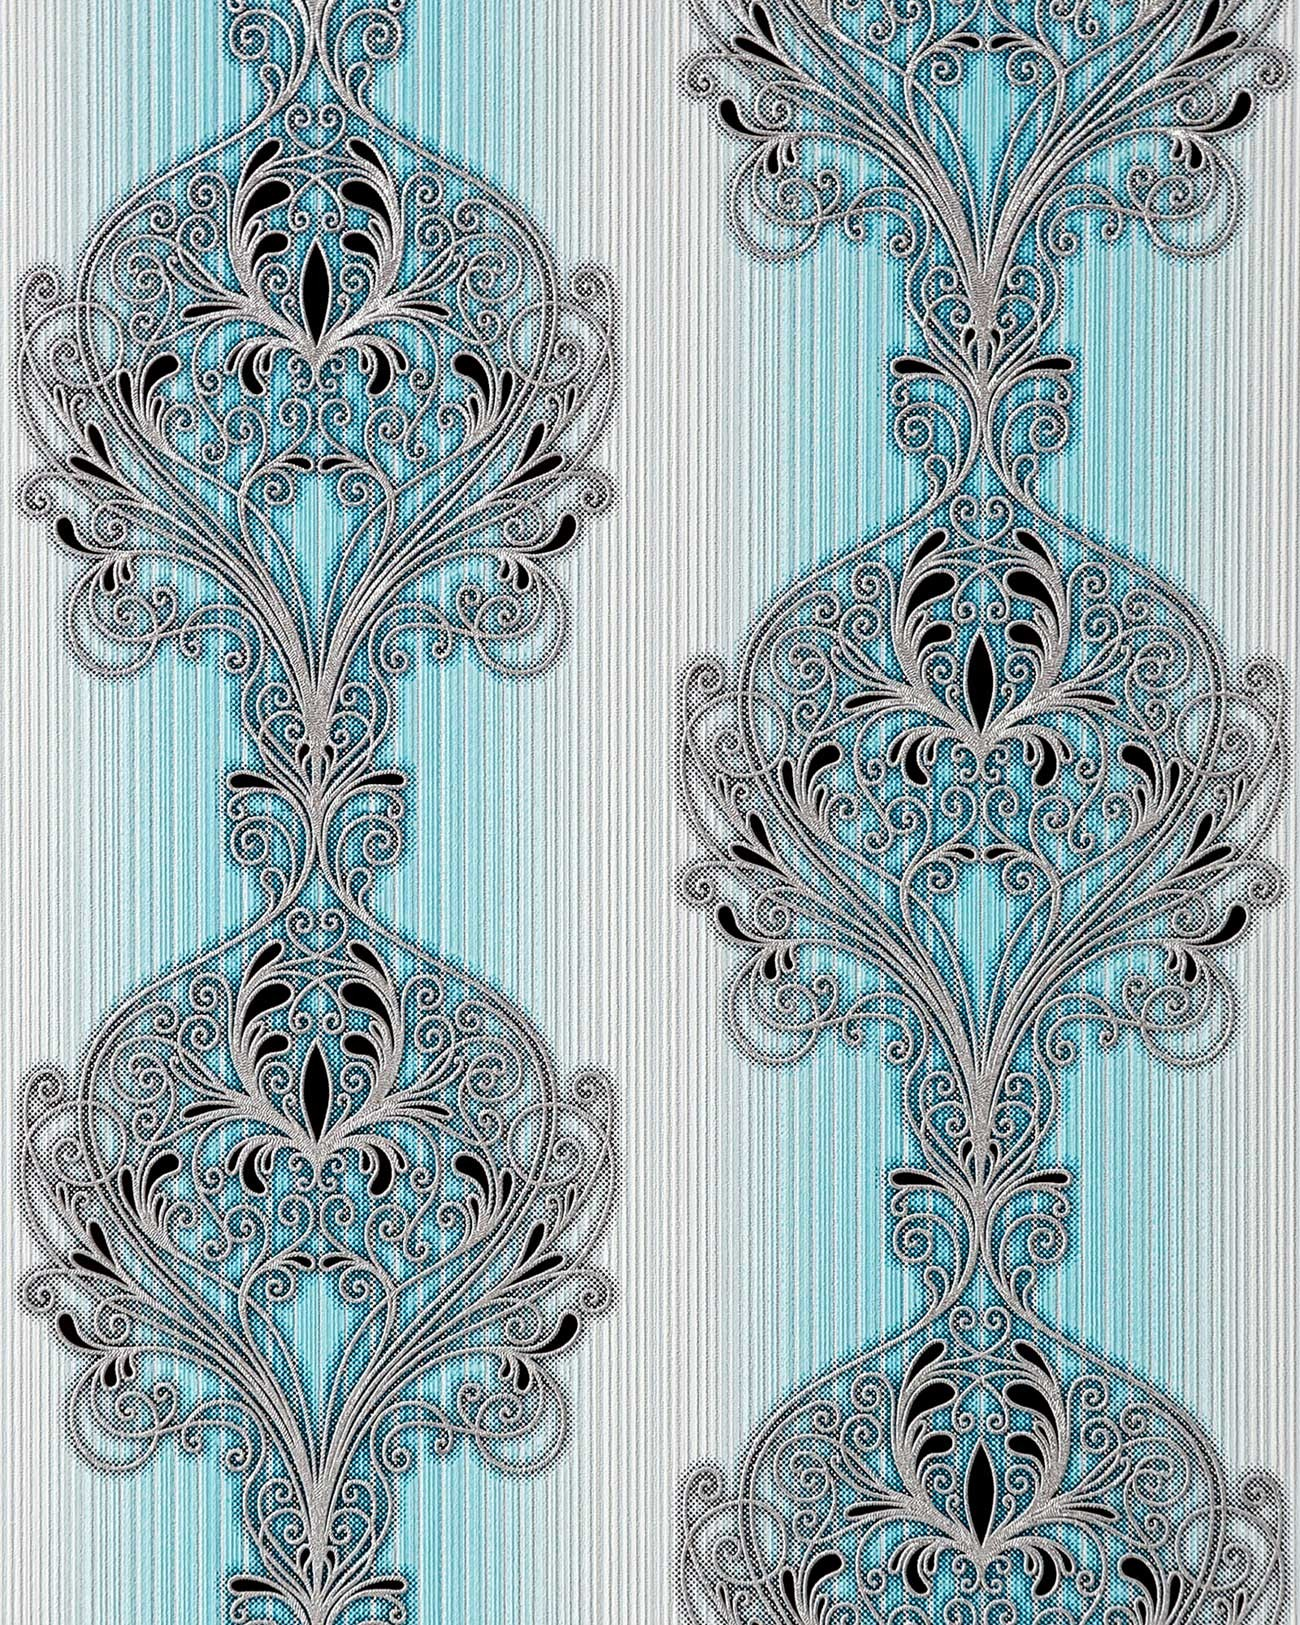 Edem 096 22 tapete barock damask ornament designs t rkis for Tapete ornament blau